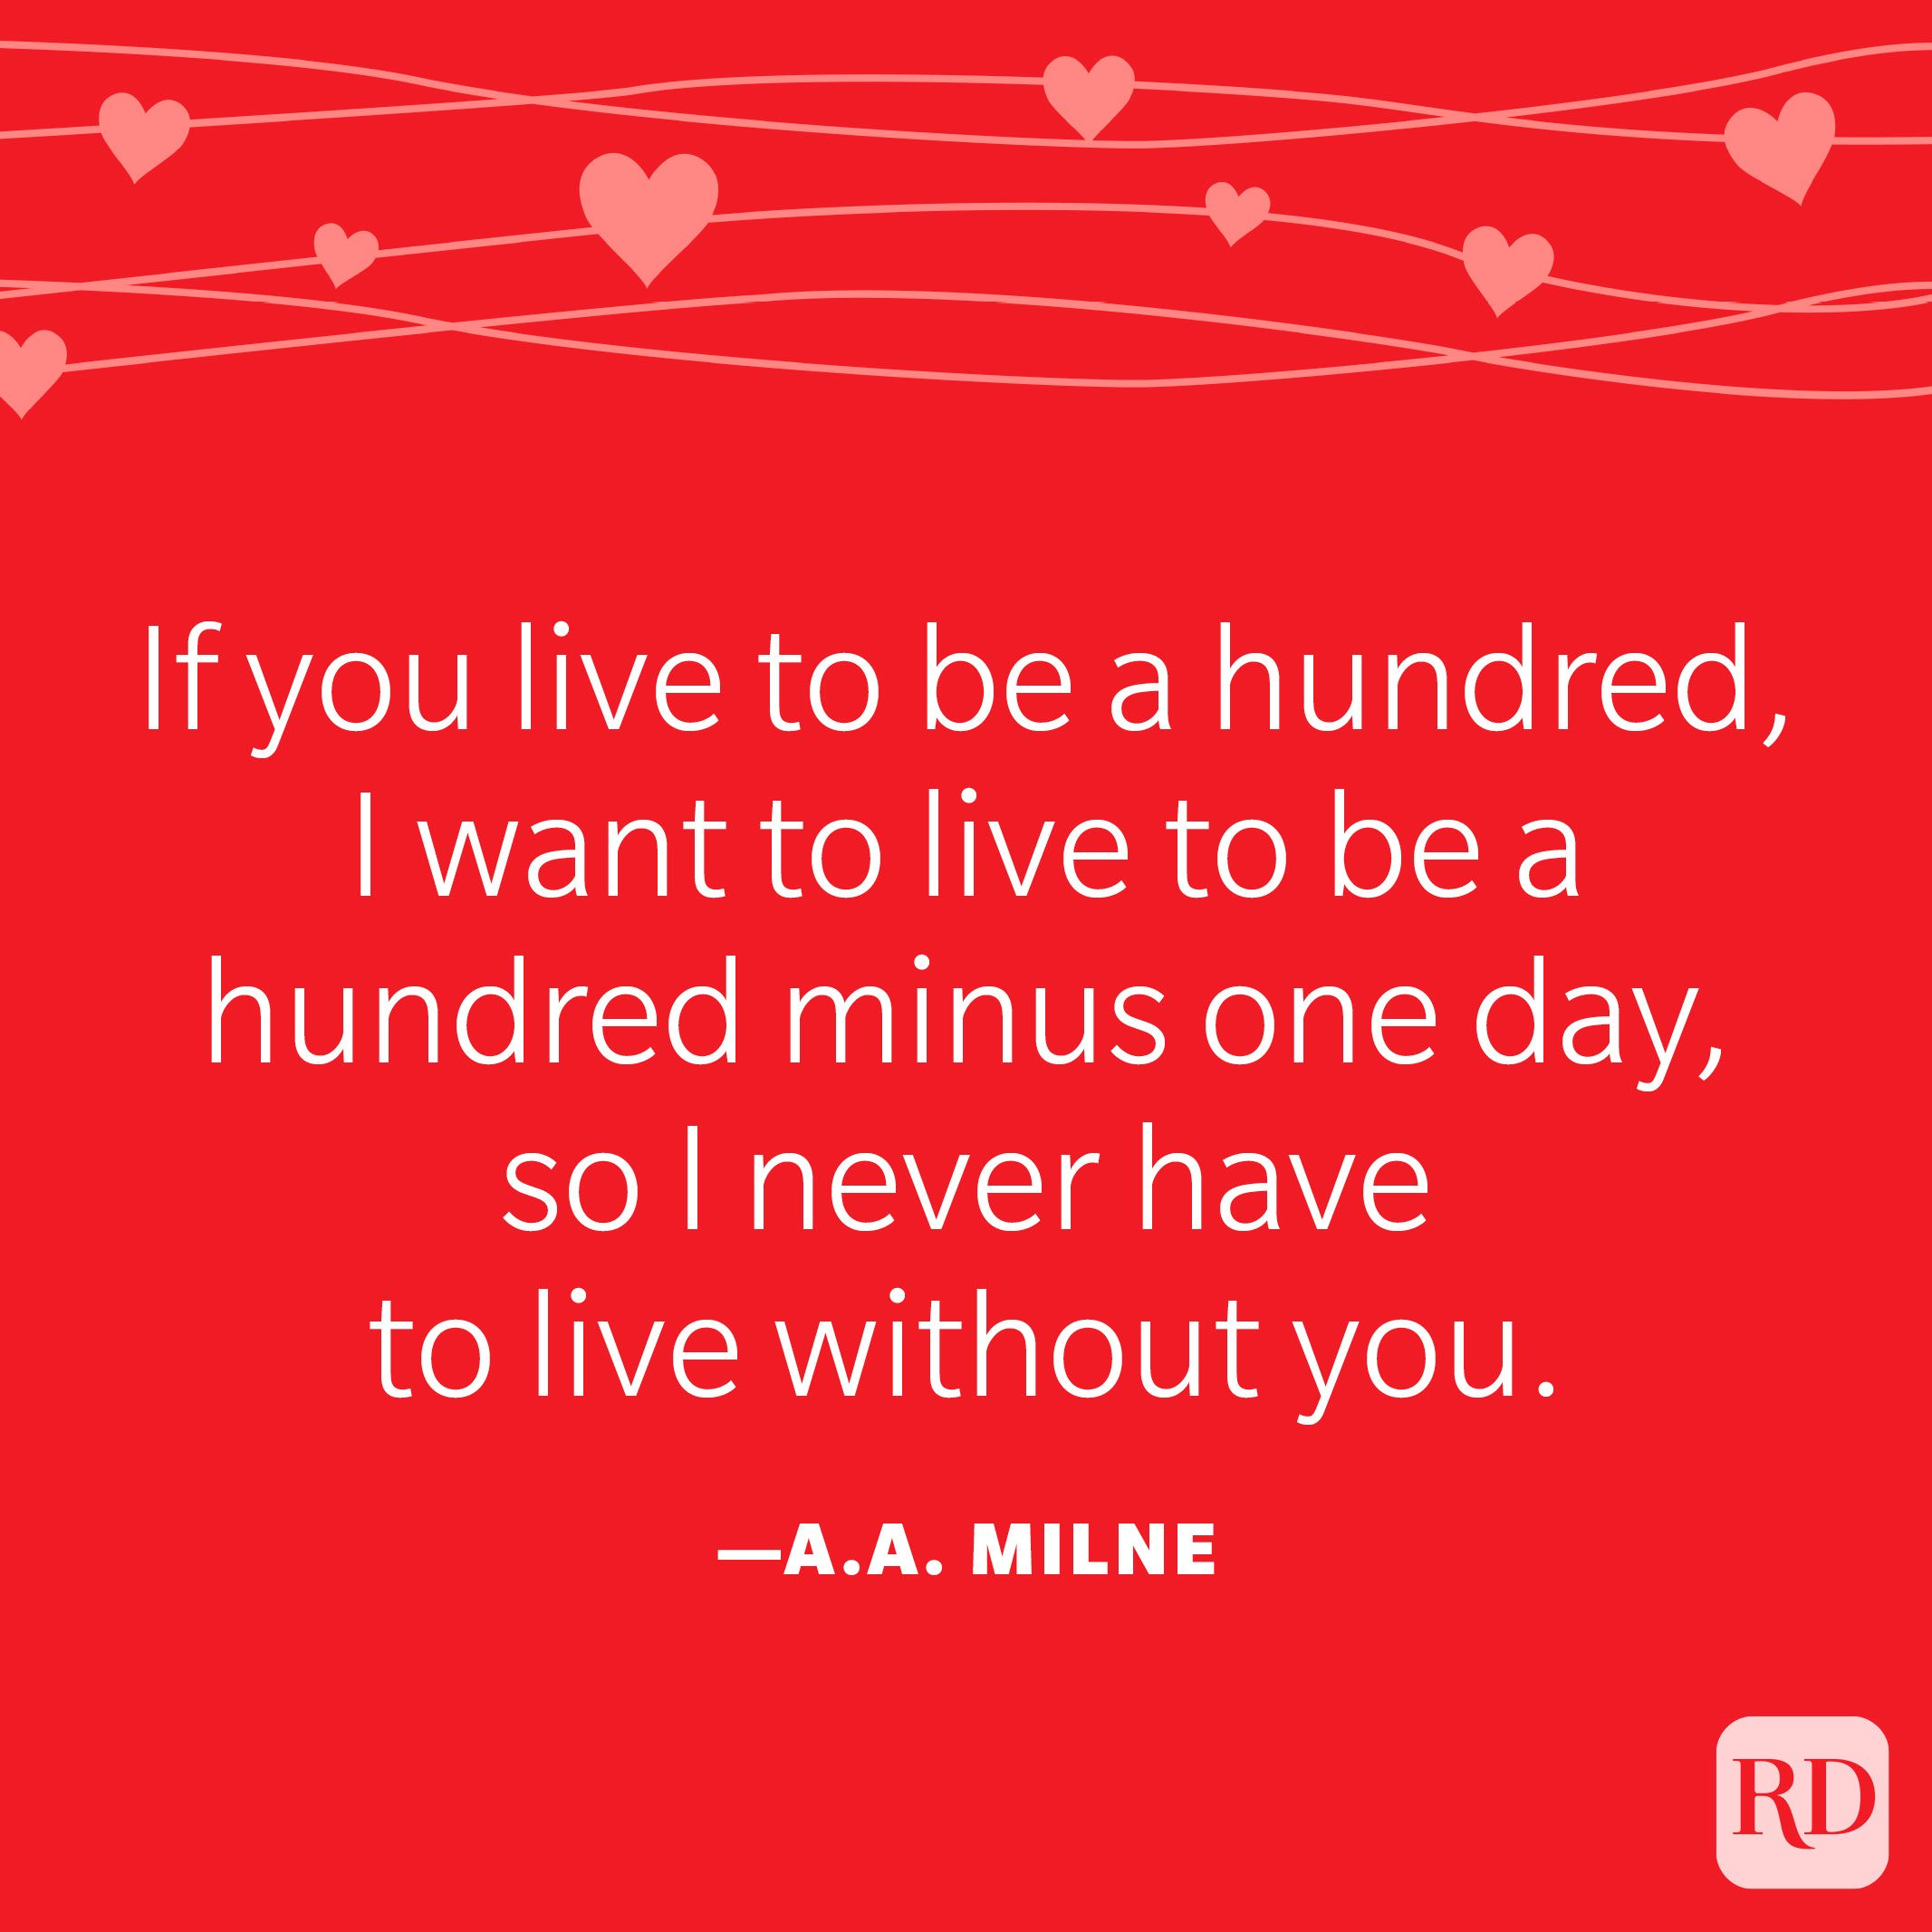 """""""If you live to be a hundred, I want to live to be a hundred minus one day, so I never have to live without you."""" —A. A. Milne"""